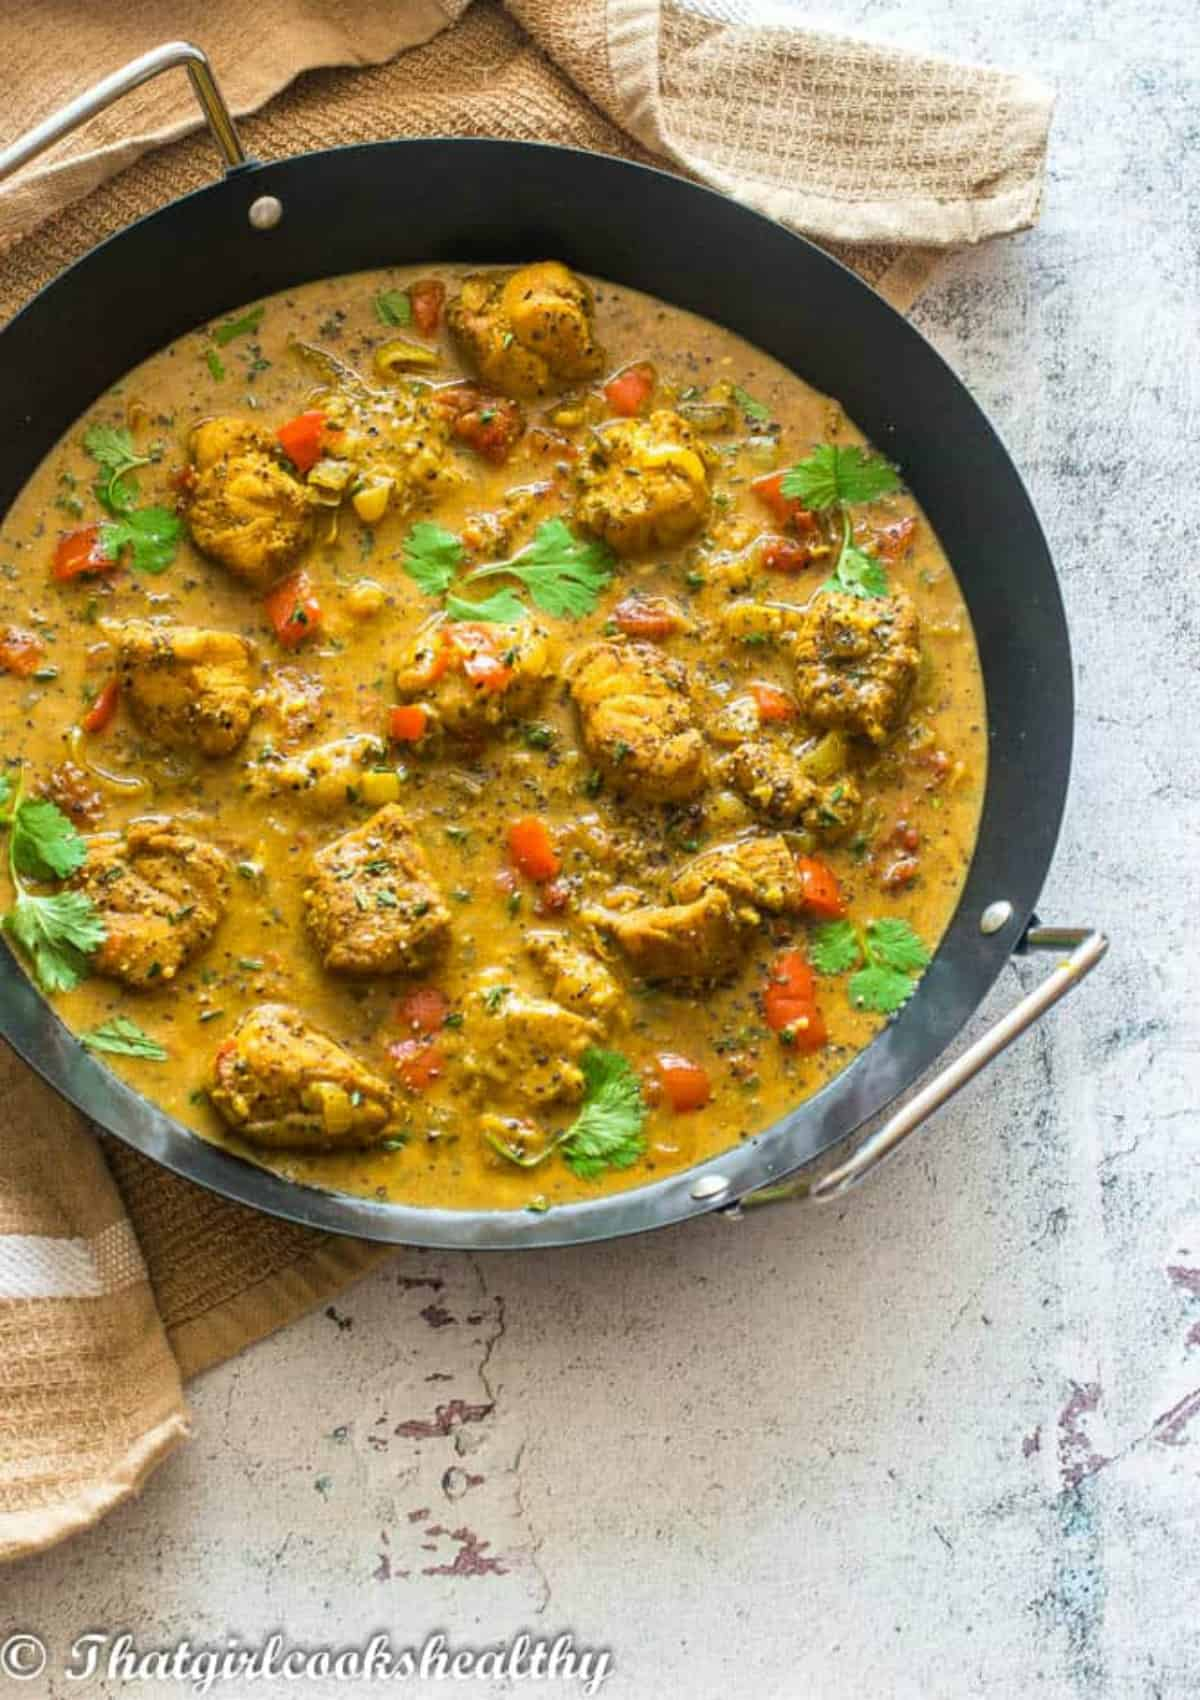 cod curried in a black skillet